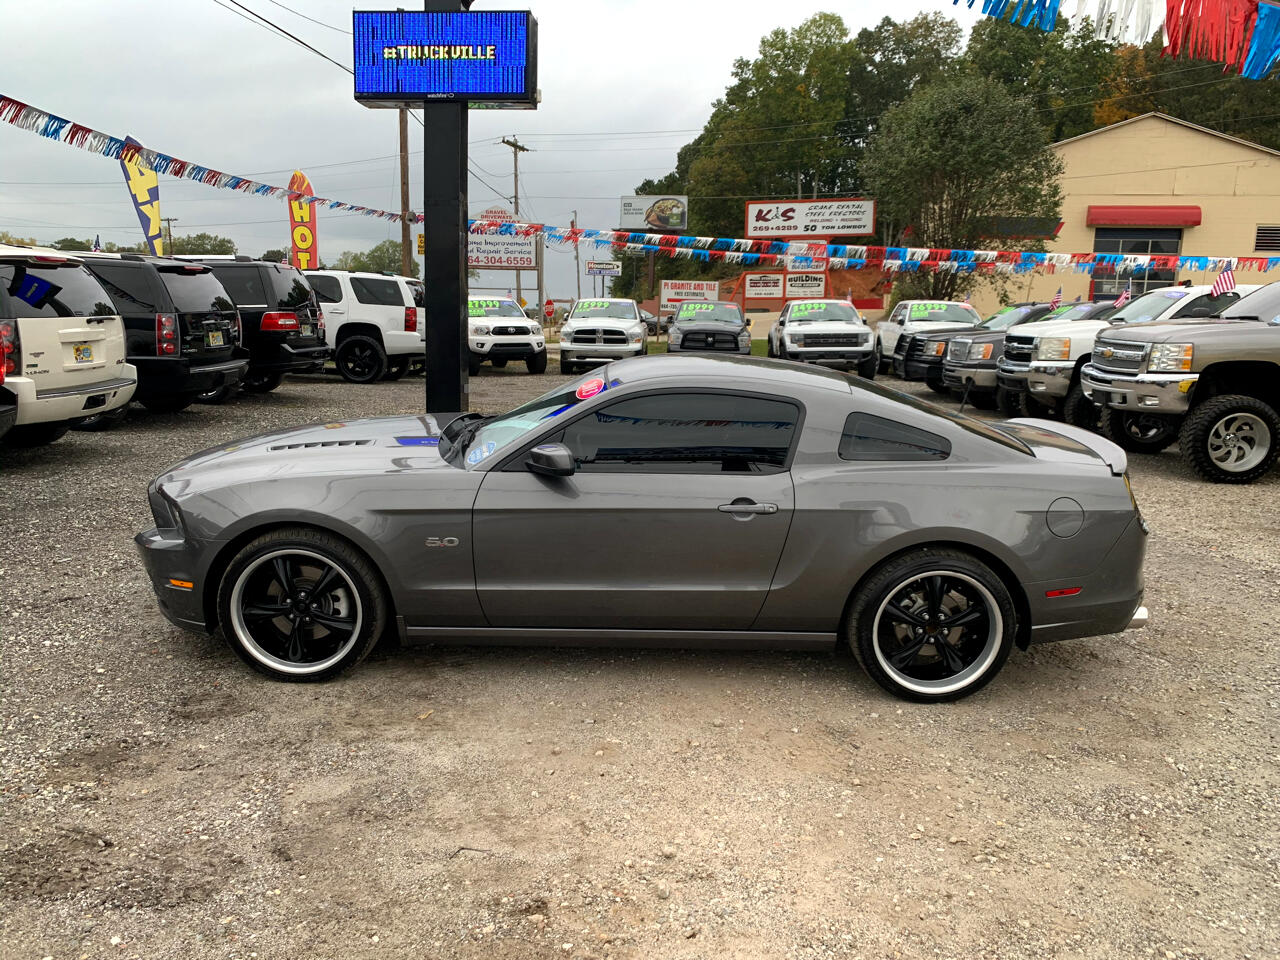 Ford Mustang GT Premium Coupe 2013